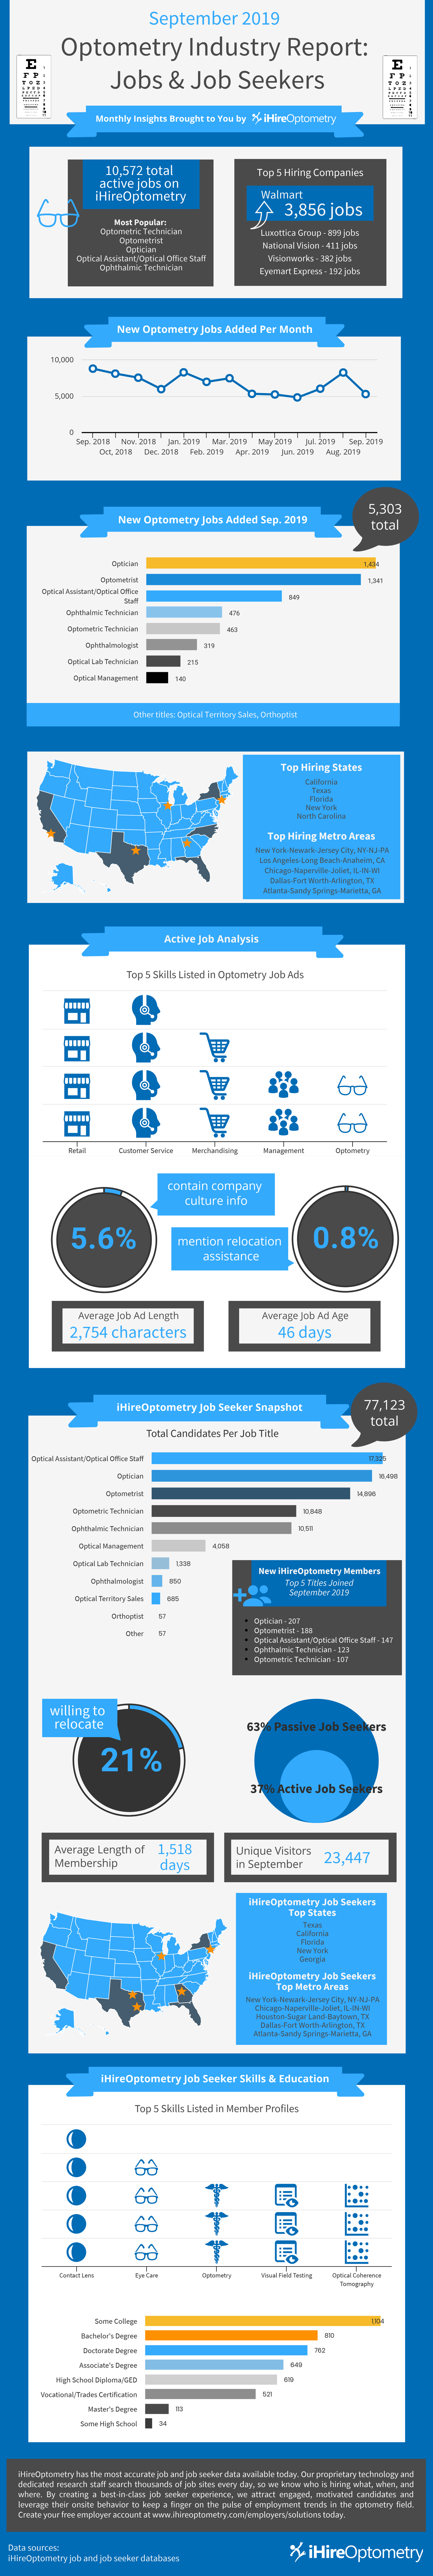 ihireoptometry september 2019 optometry industry infographic